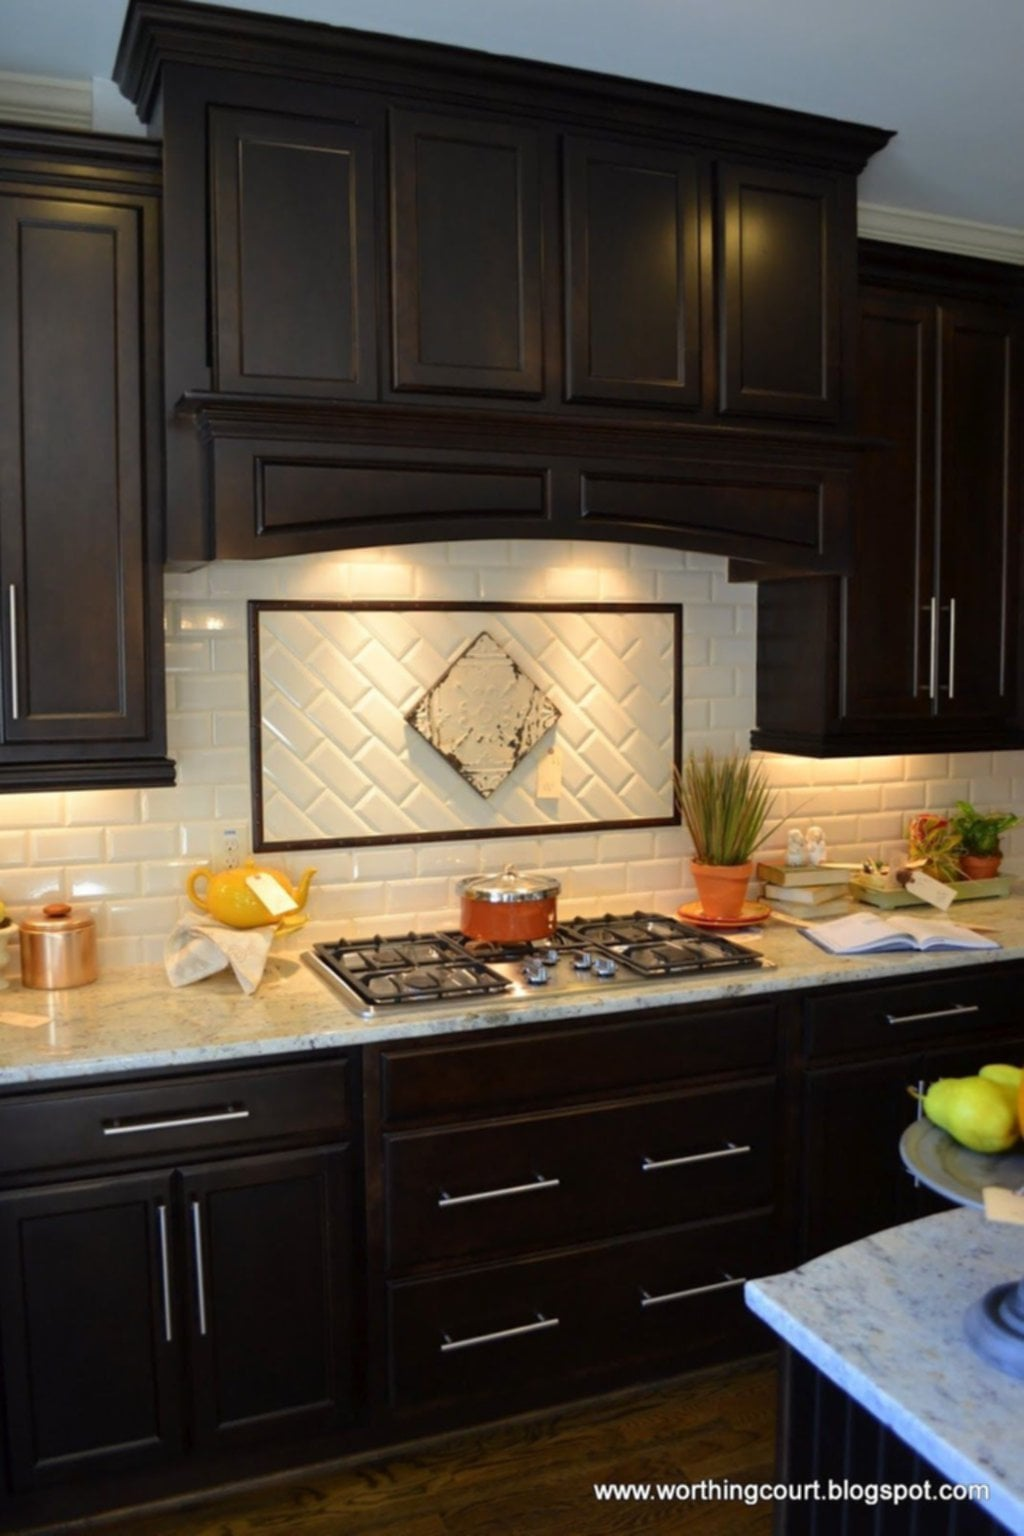 Kitchen Contemporary Kitchen Backsplash Idea Dark Ideas For Backsplash Ideas With Dark Cabinets